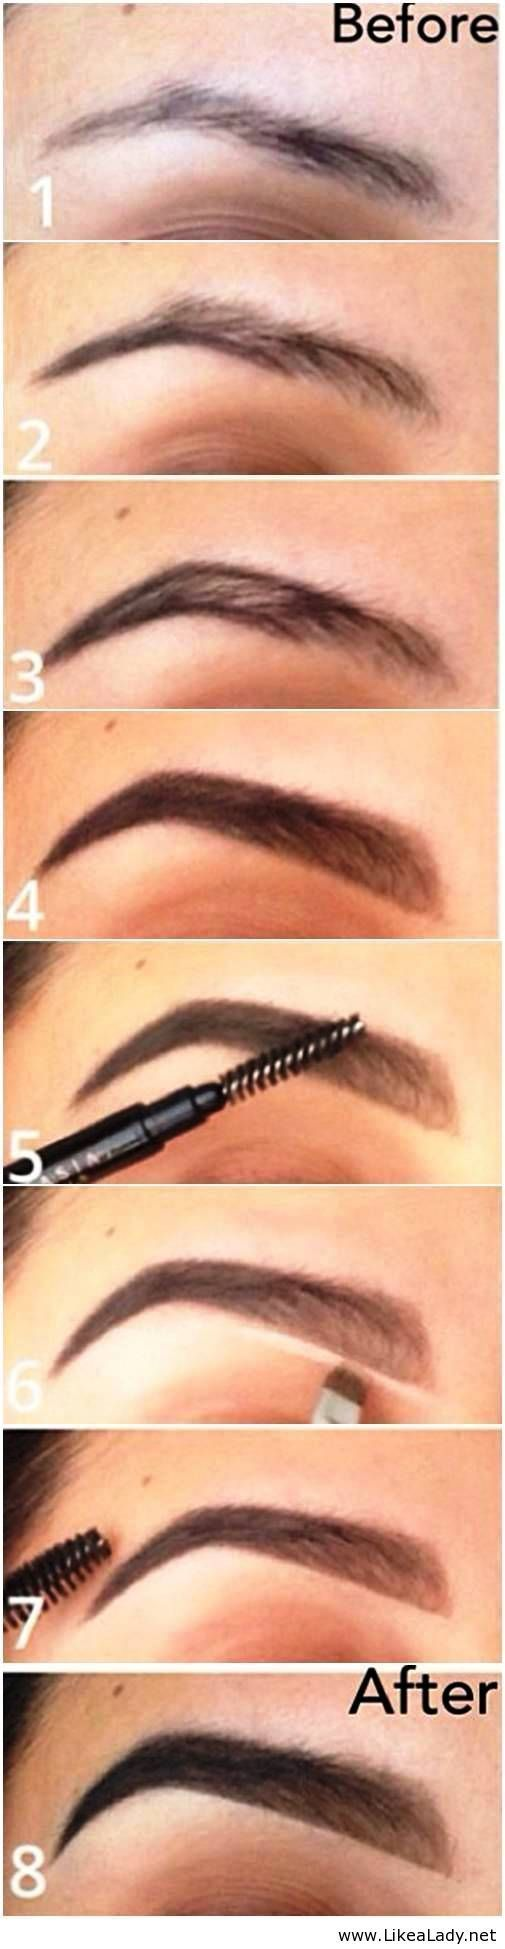 7 Times Eyeshadow Completely Changed Your Look - Likes